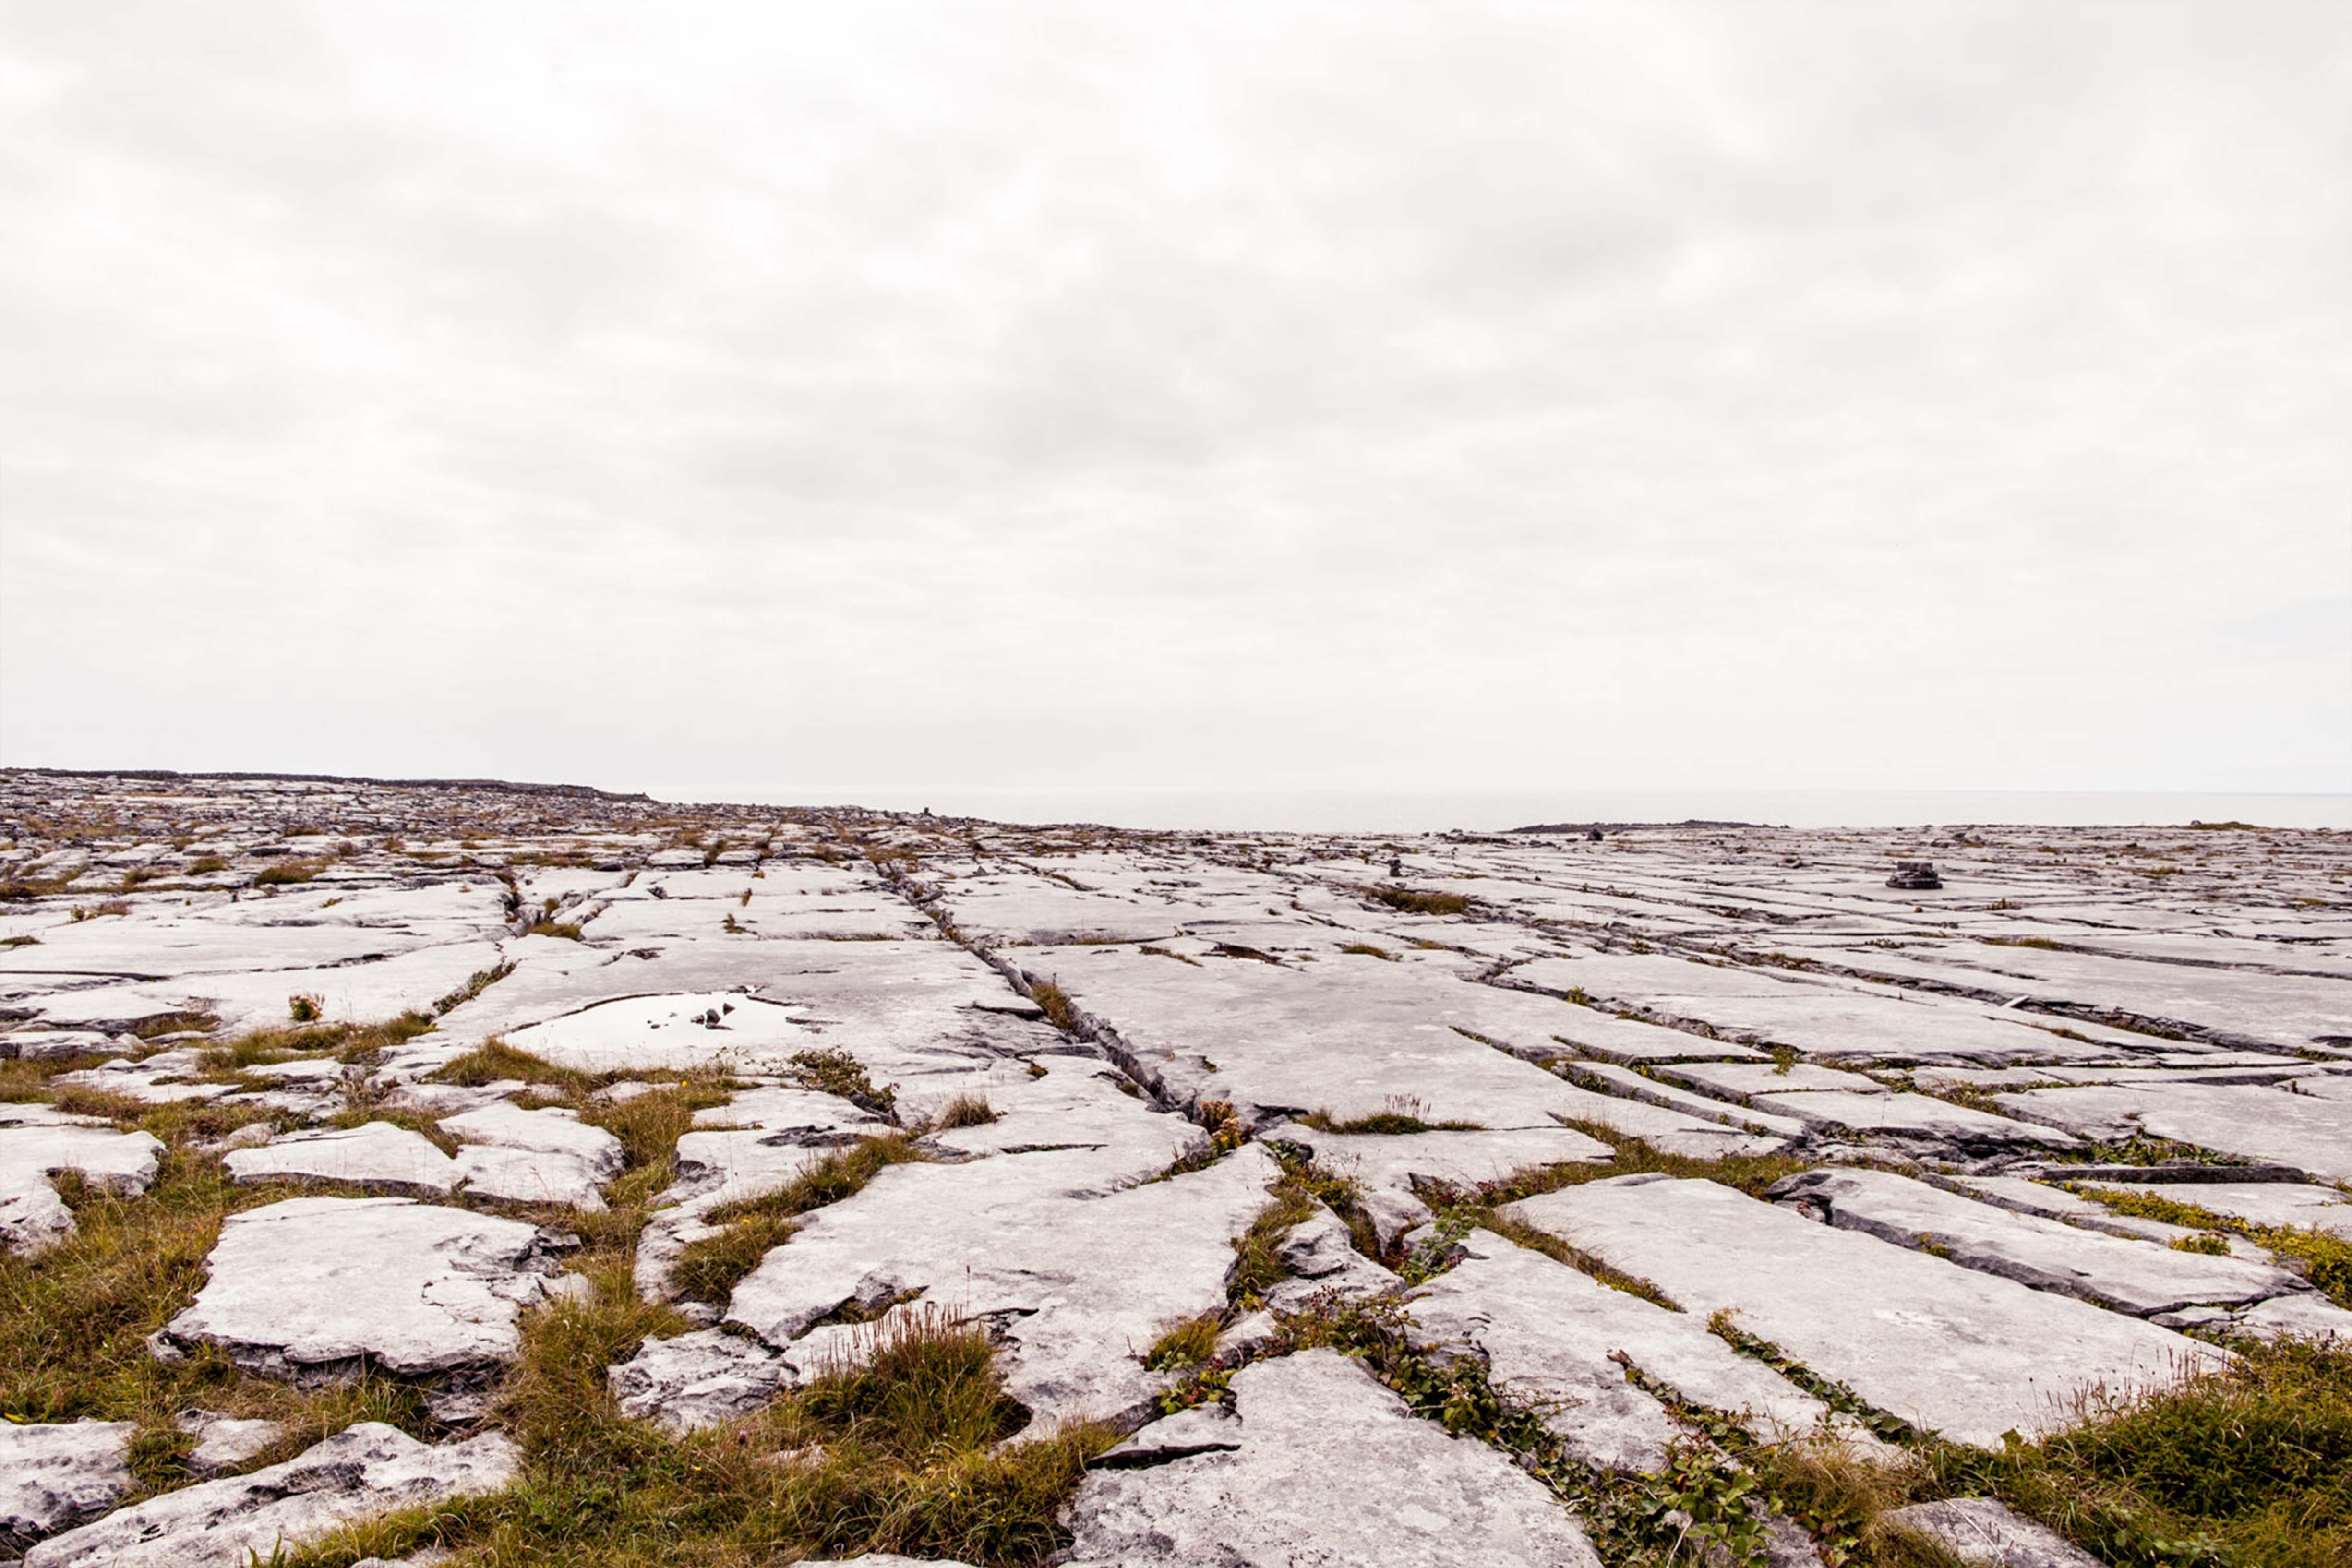 Aran Islands - the birthplace of Irish Aran Sweaters